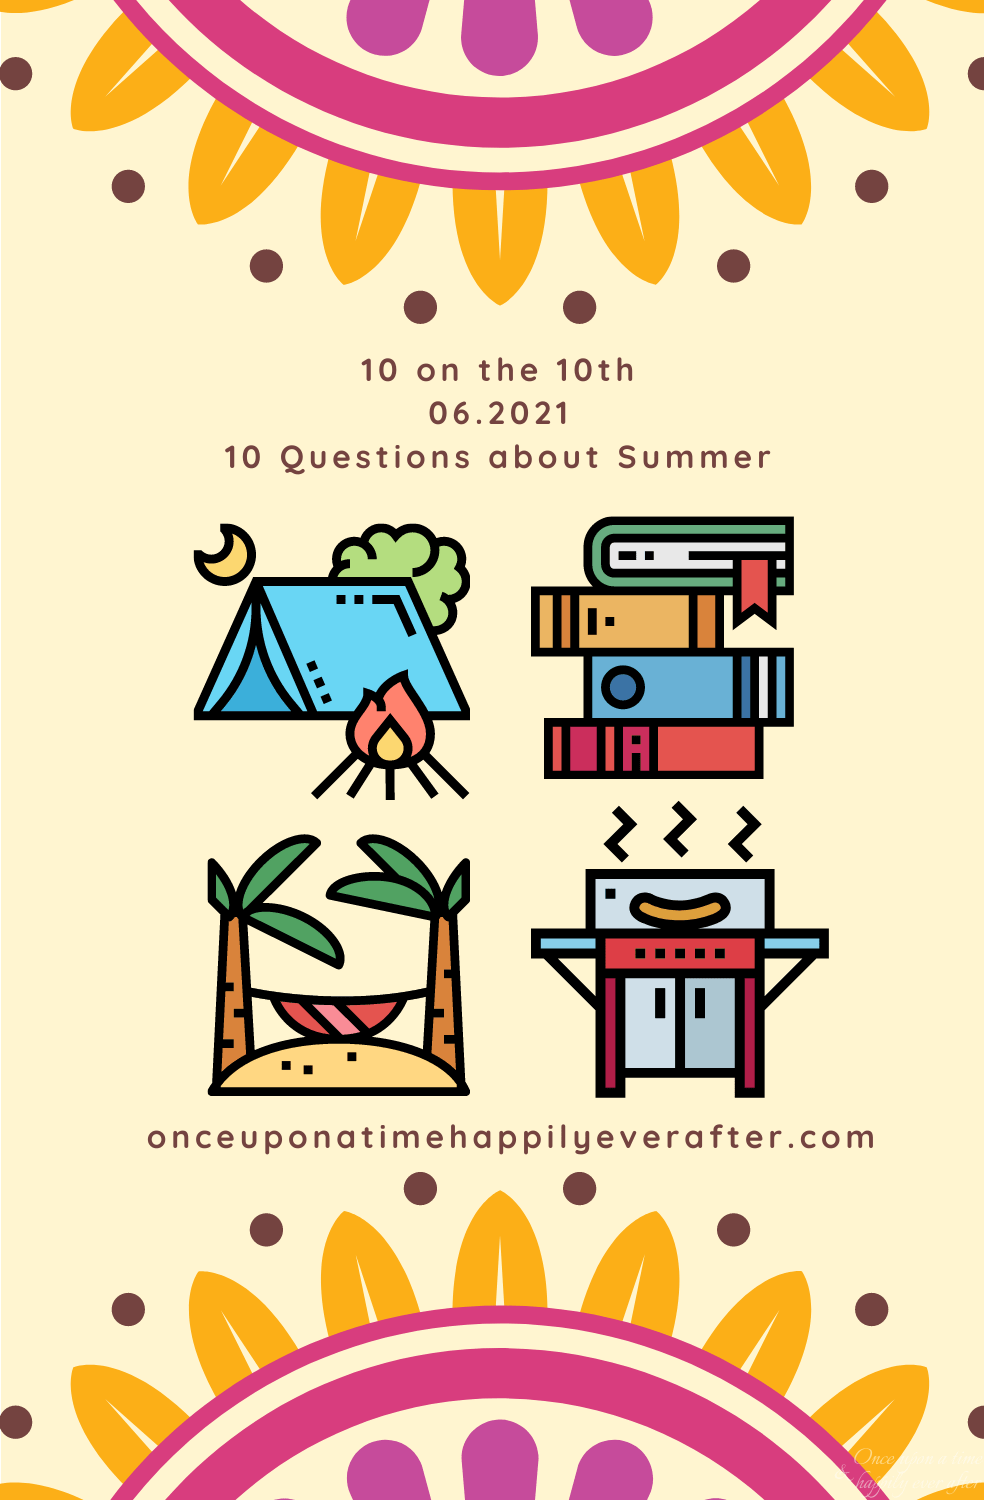 10 Questions About Summer: